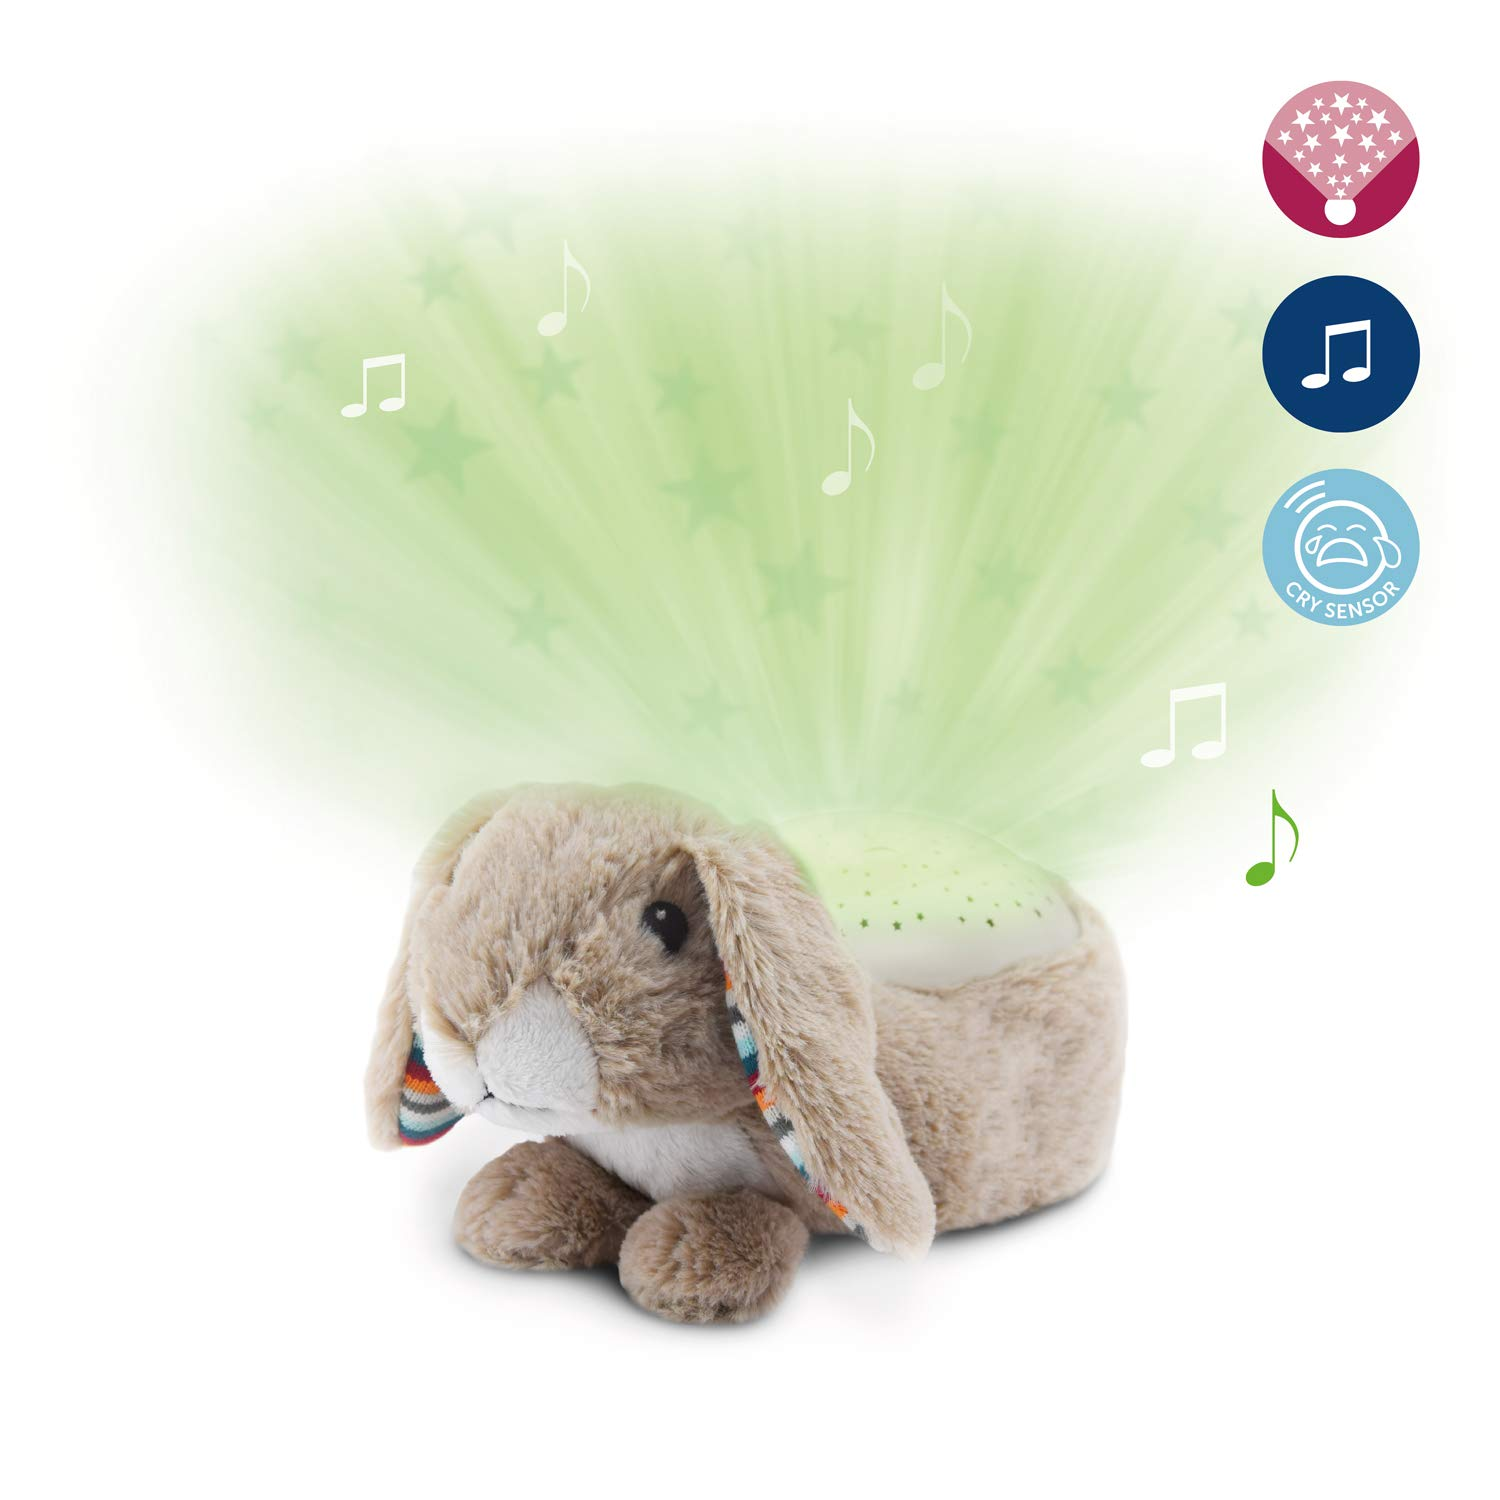 Soothing Starlight Nightlight Toy Projector - Soft Plush Animal with Starry Projections, Soft Musical Lullabies, Color Changing, Cry Sensor, Auto-Off, Battery Operated - Ruby The Rabbit by Zazu Kids